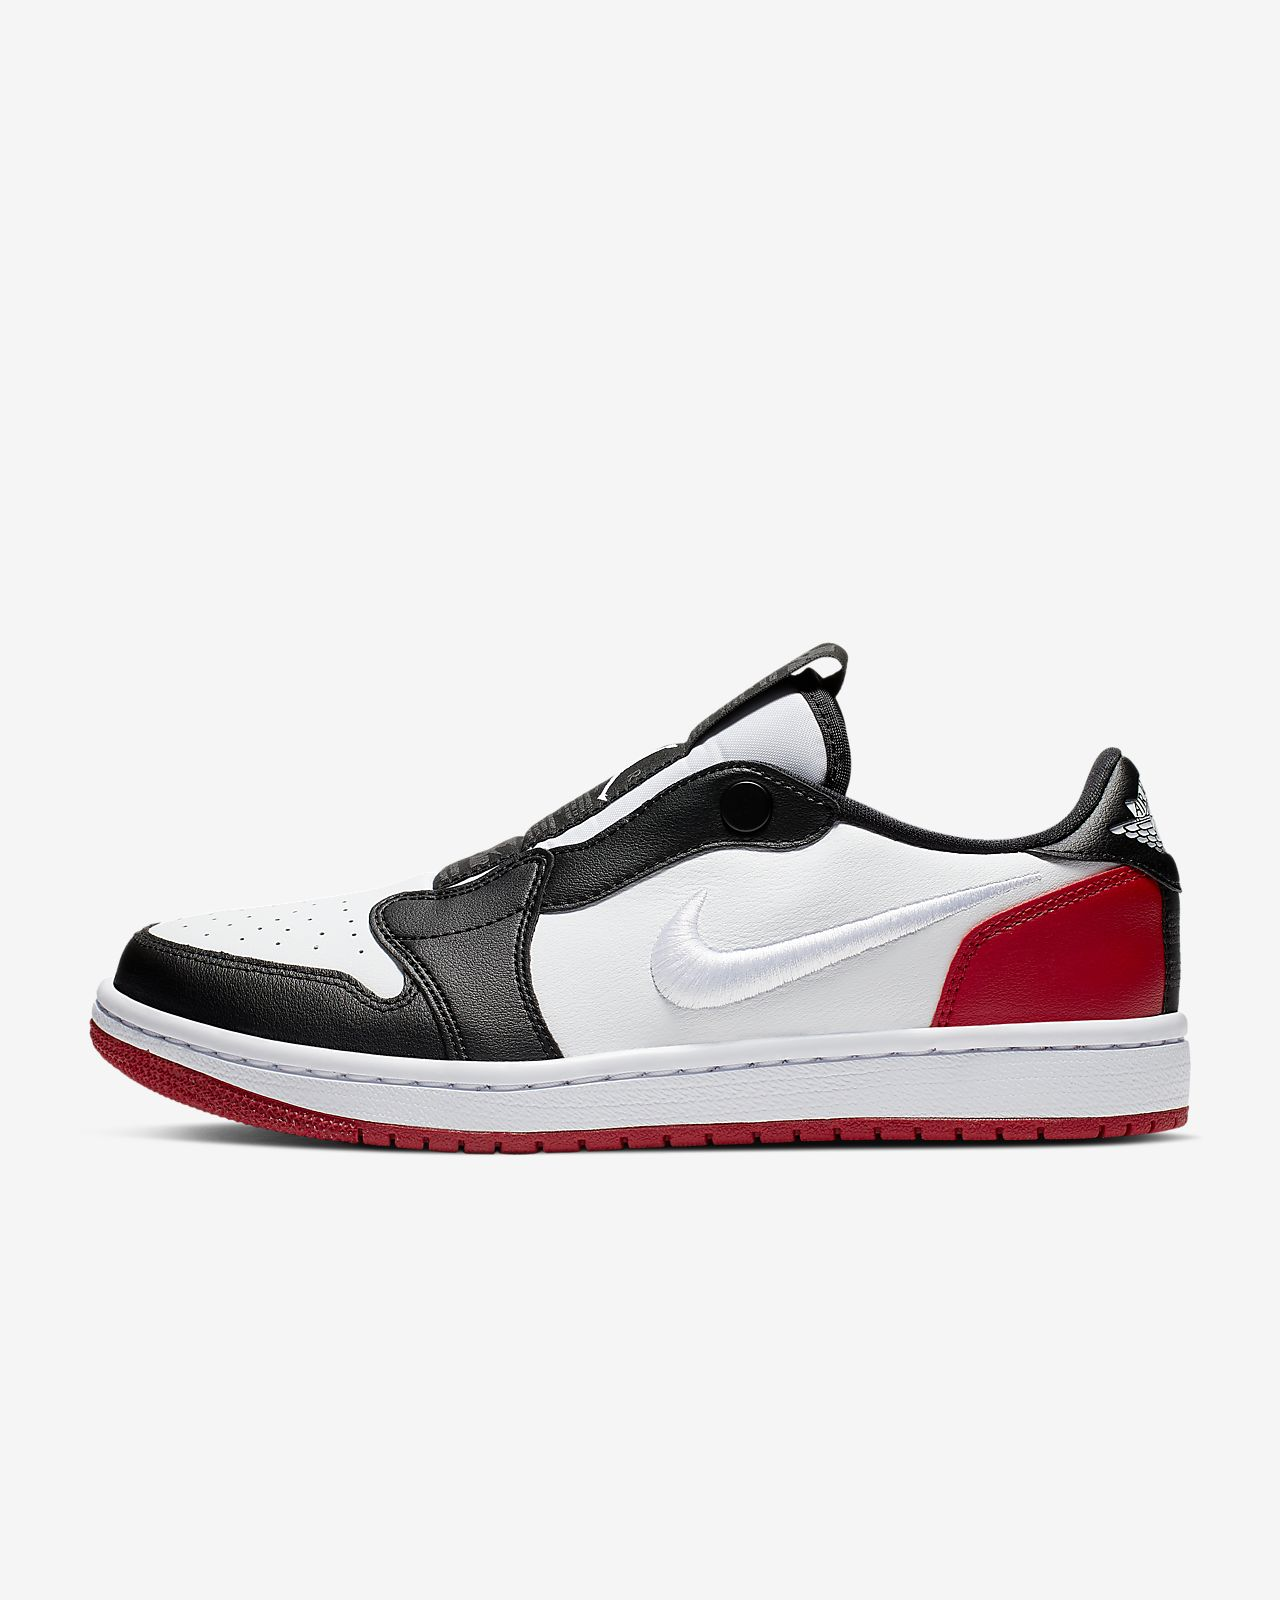 Air Jordan 1 Retro Low Slip Damesschoen